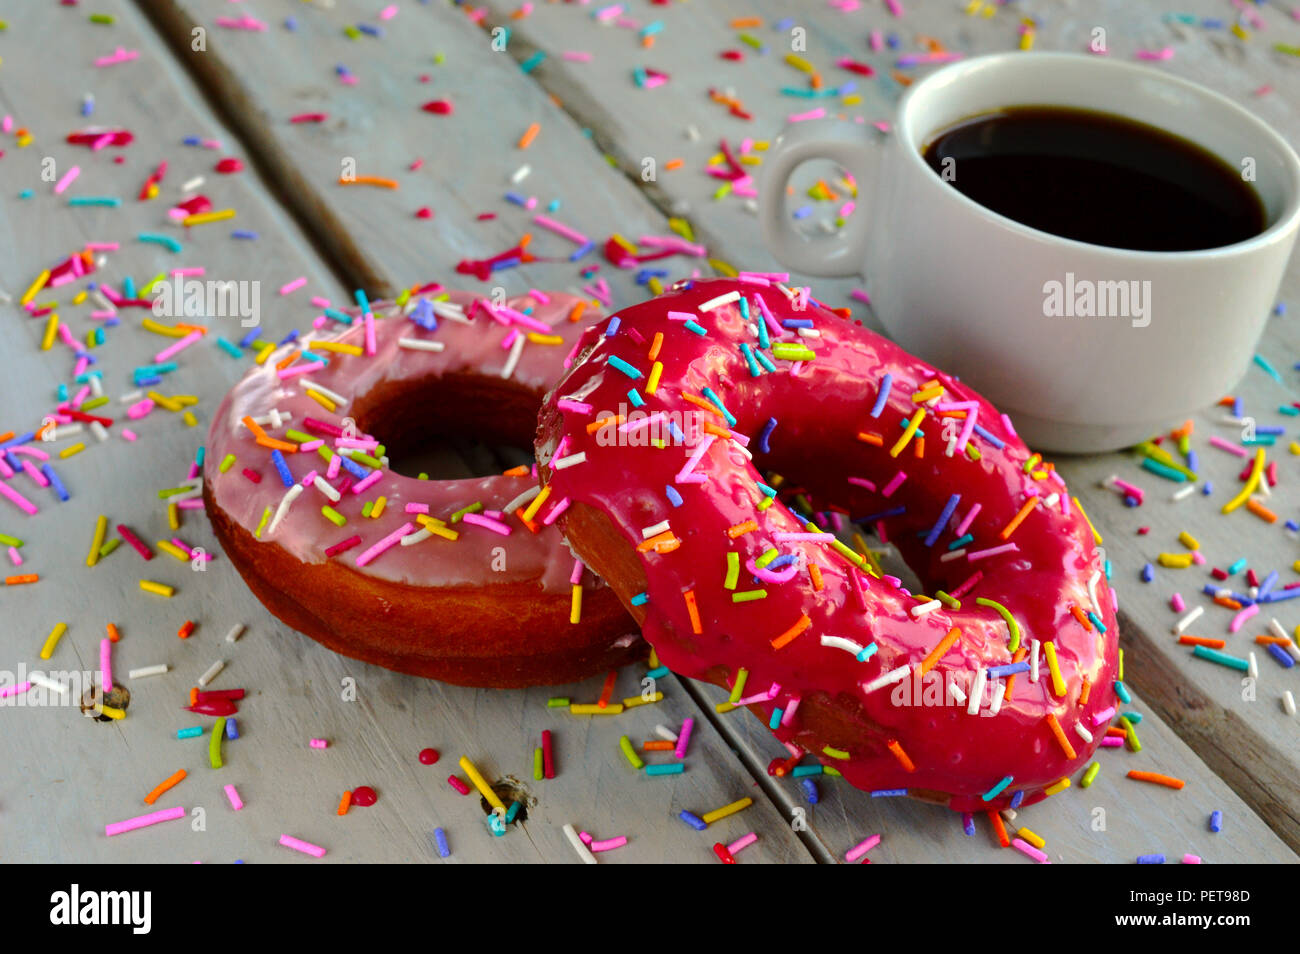 Doughnuts with a cup of coffee - Stock Image